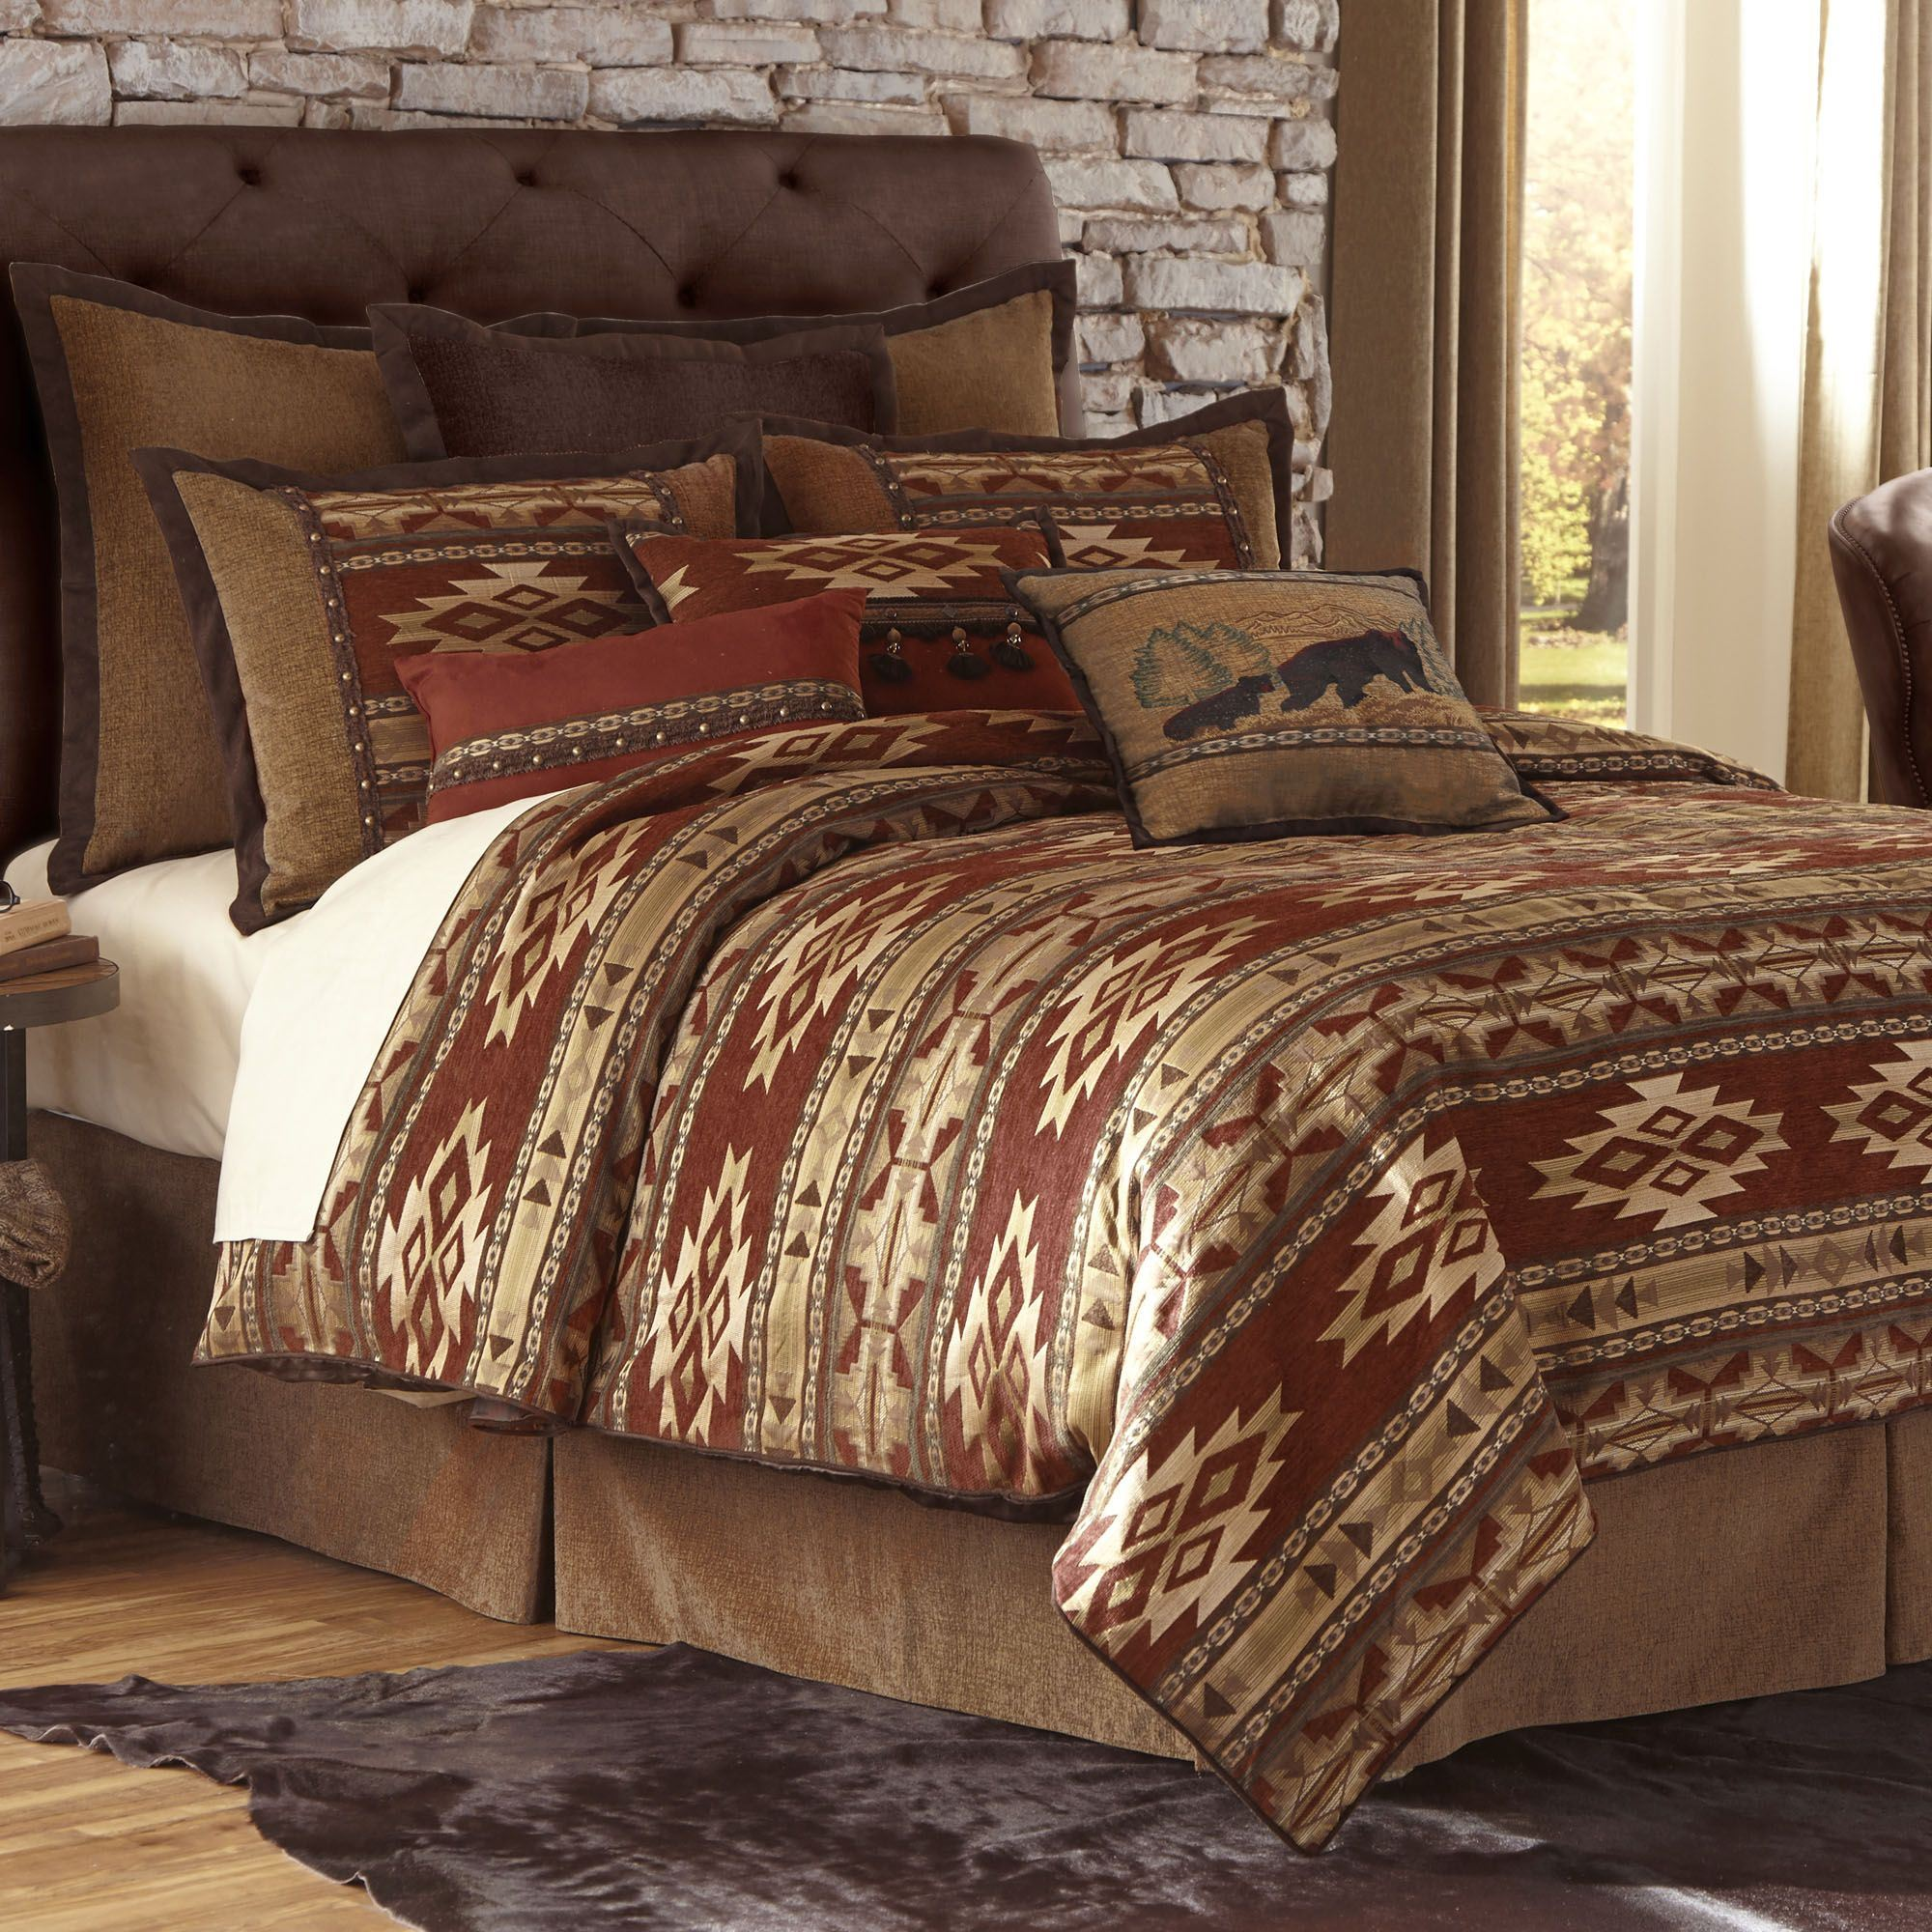 Sonorah Southwest Comforter Bedding